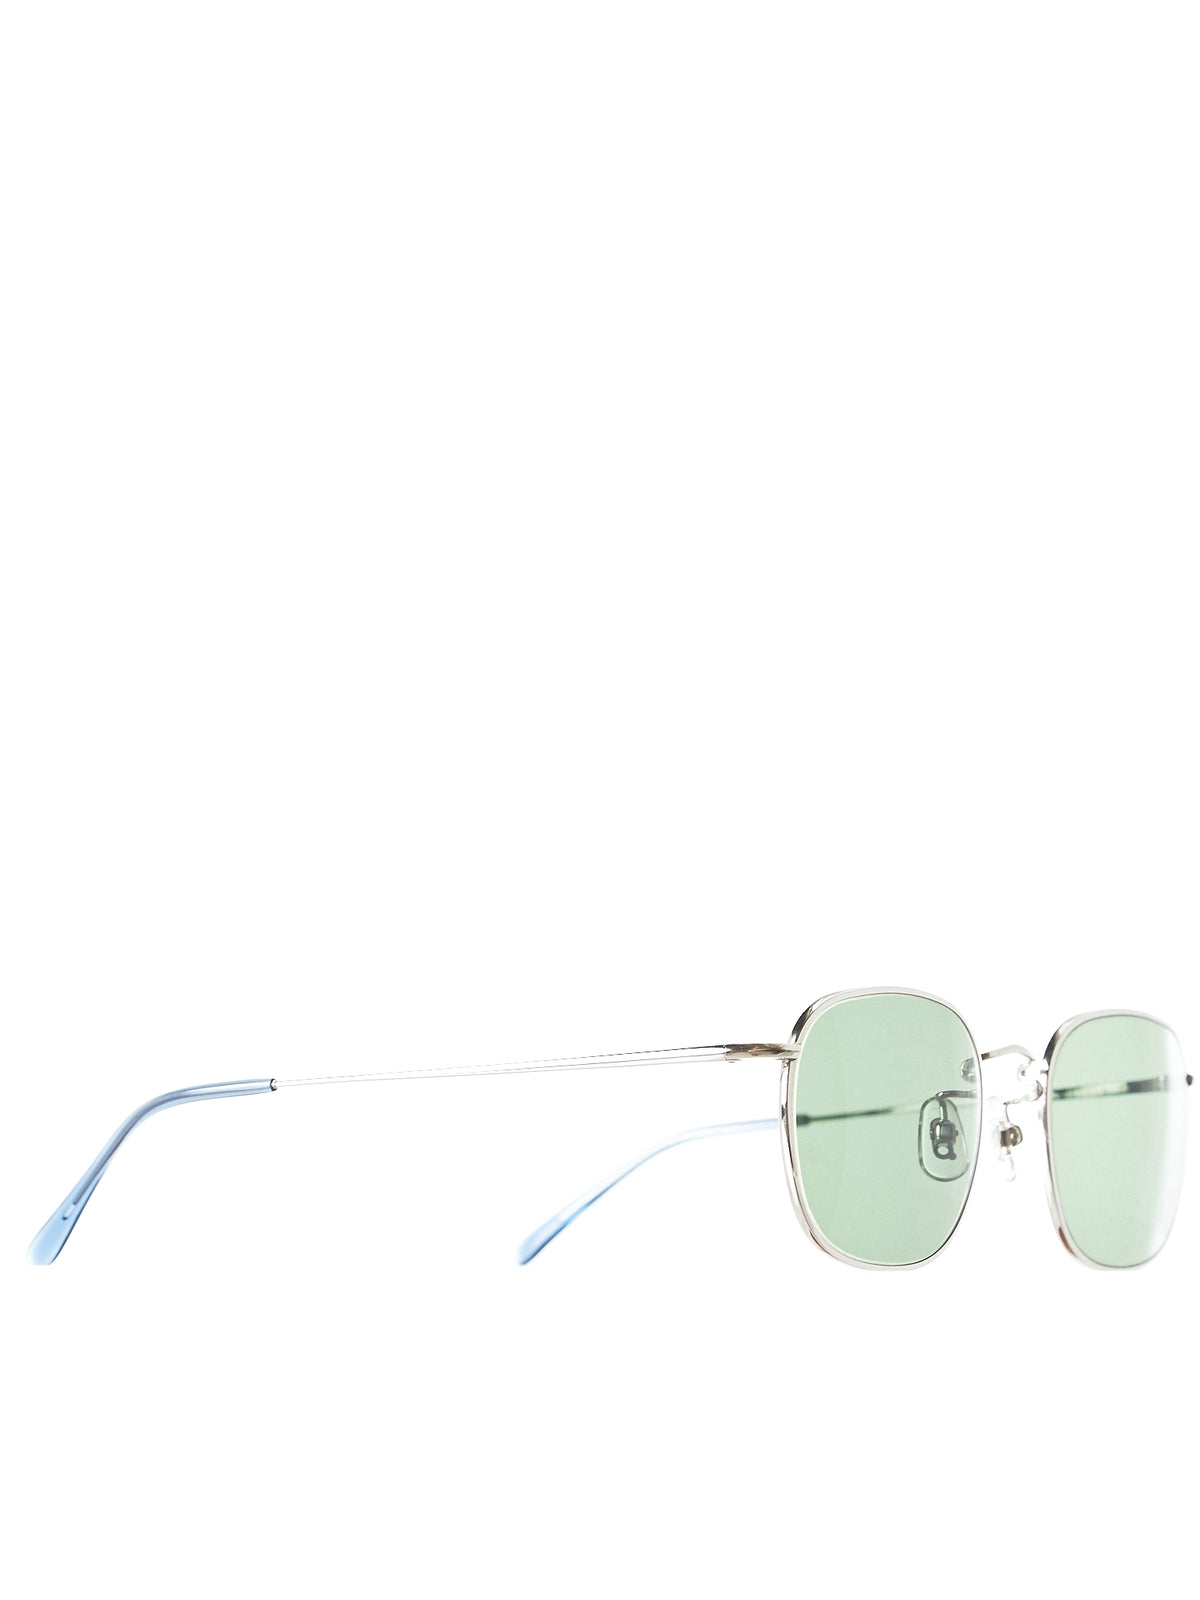 Wellington Titanium Sunglasses (ST-TITAN-WELLINGTON-SLVR-TWGRN)